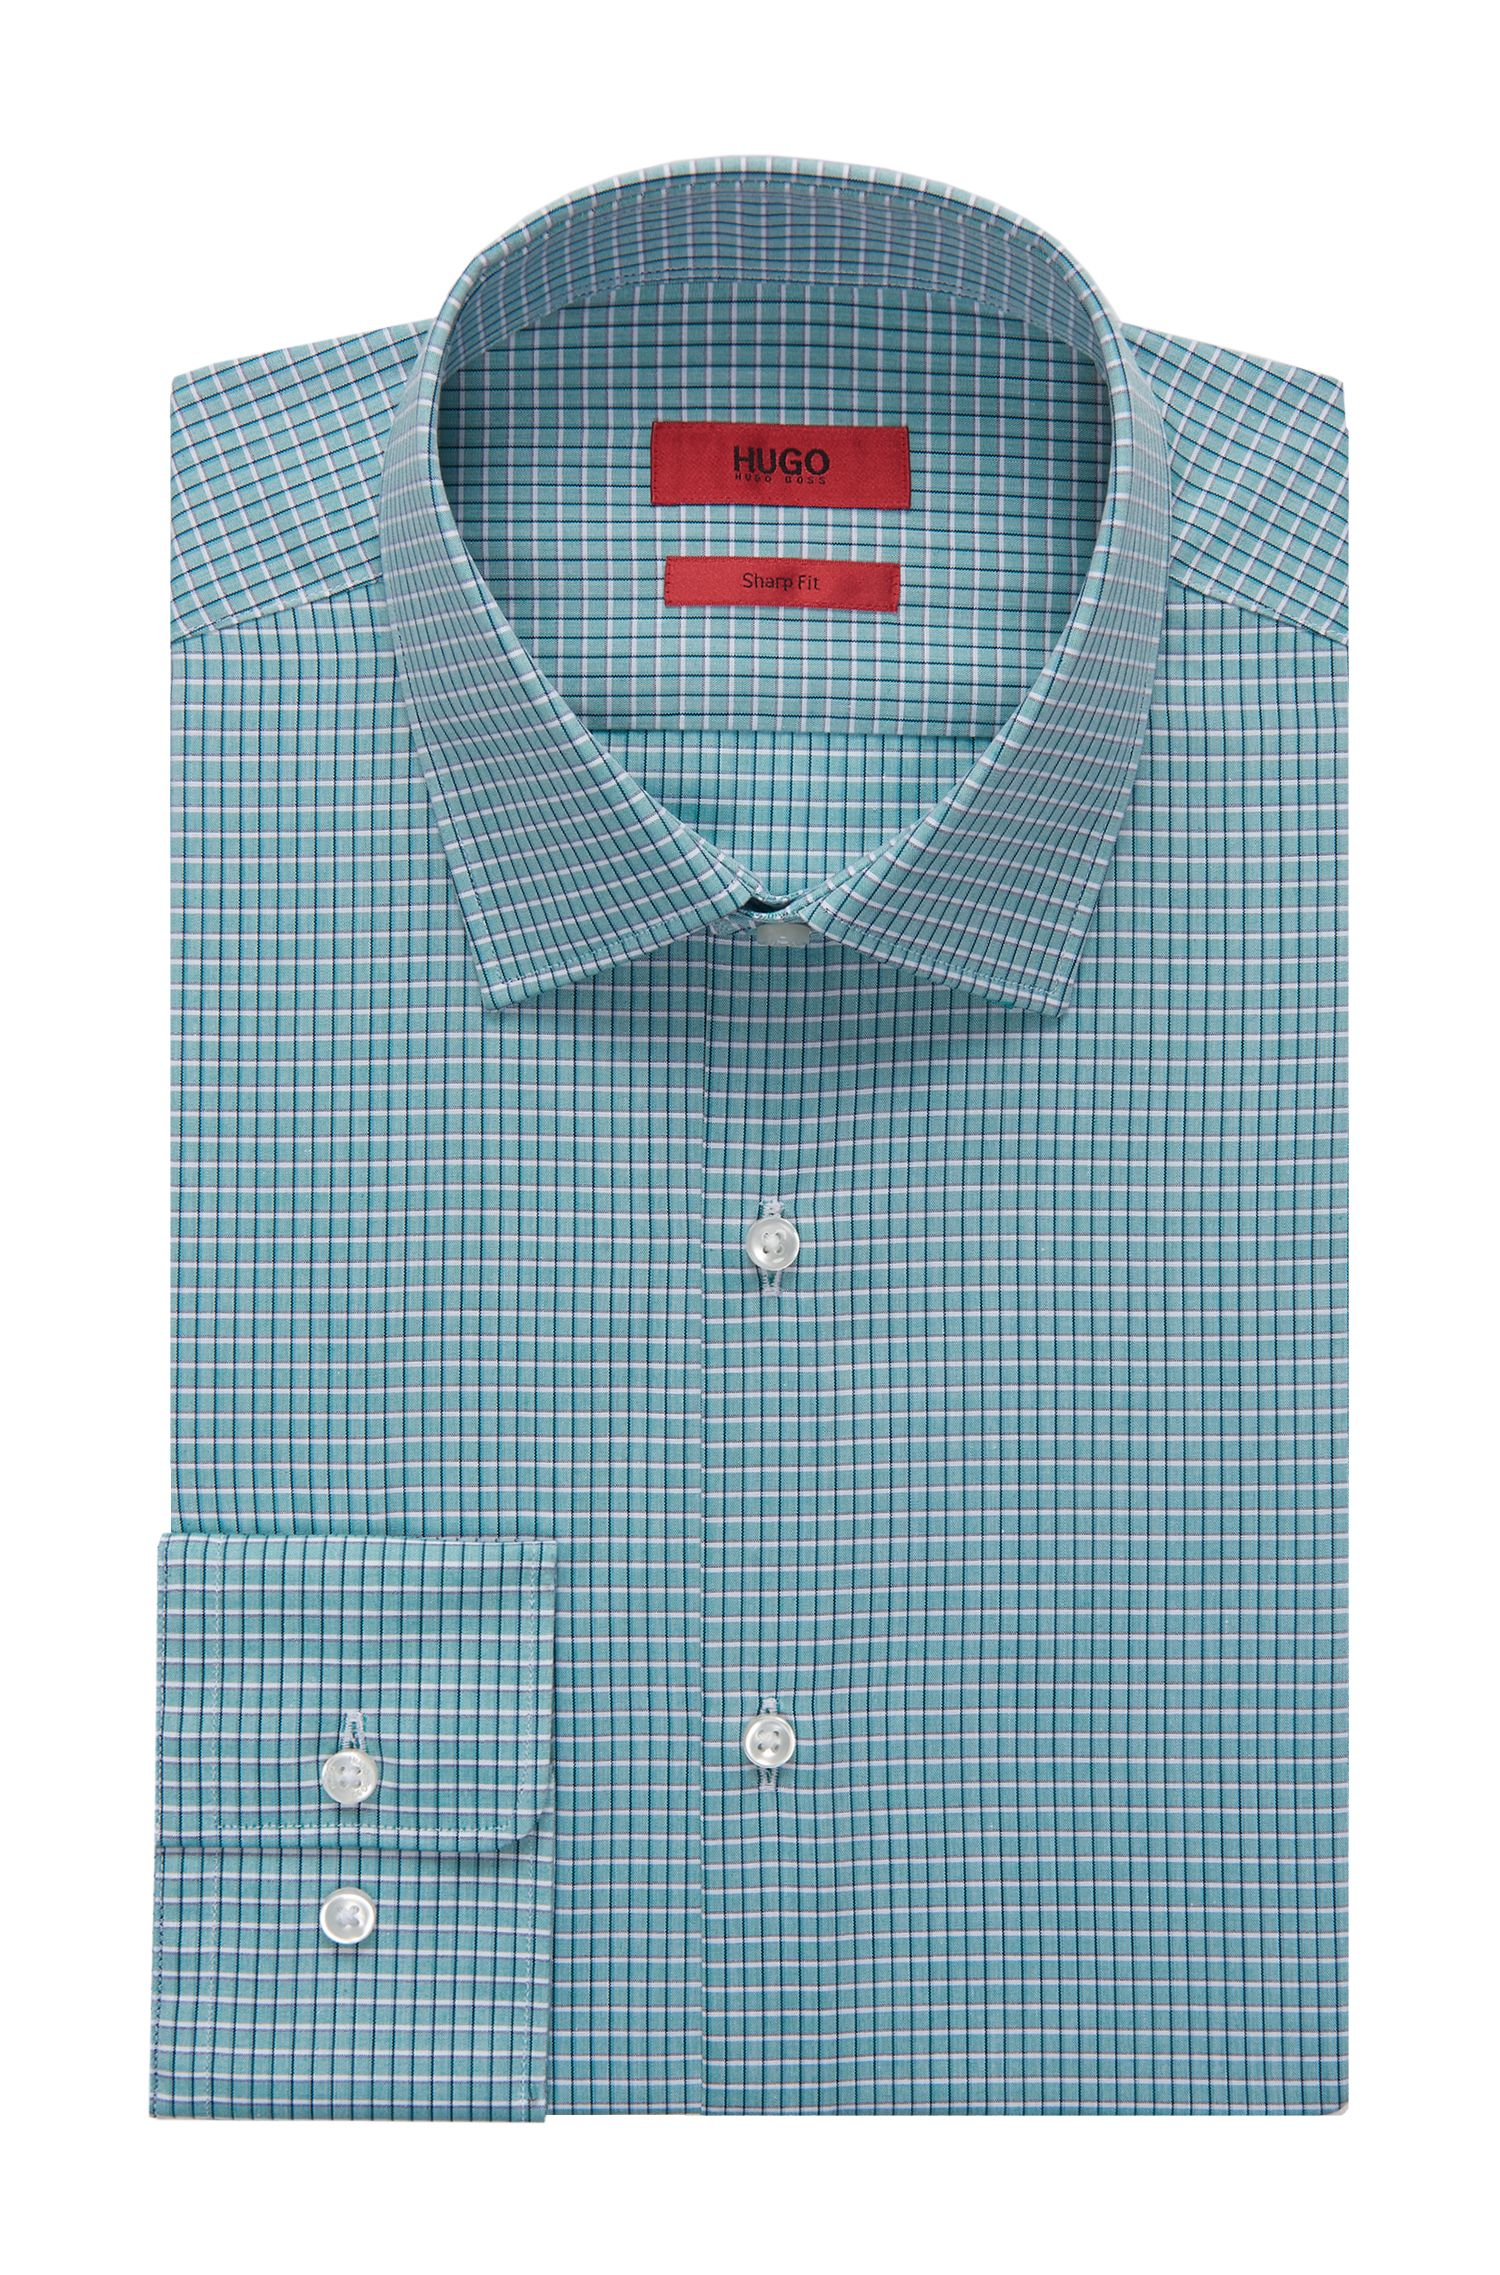 Checked Dress Shirt, Sharp Fit | C-Mabel